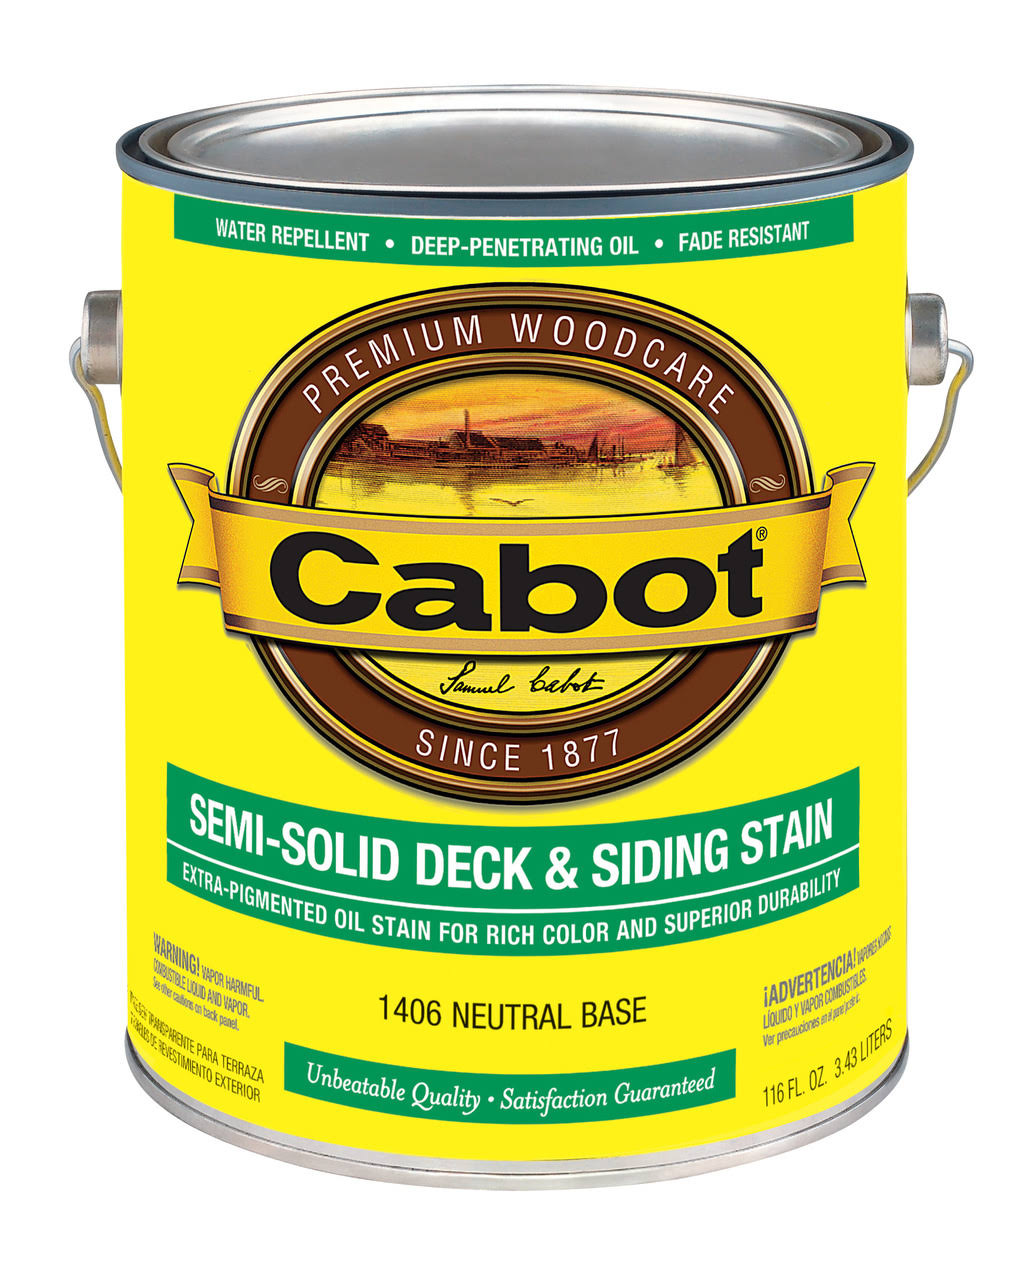 Cabot Deck & Siding Semi Solid Stain - 1406 Neutral Base, 1 Gal